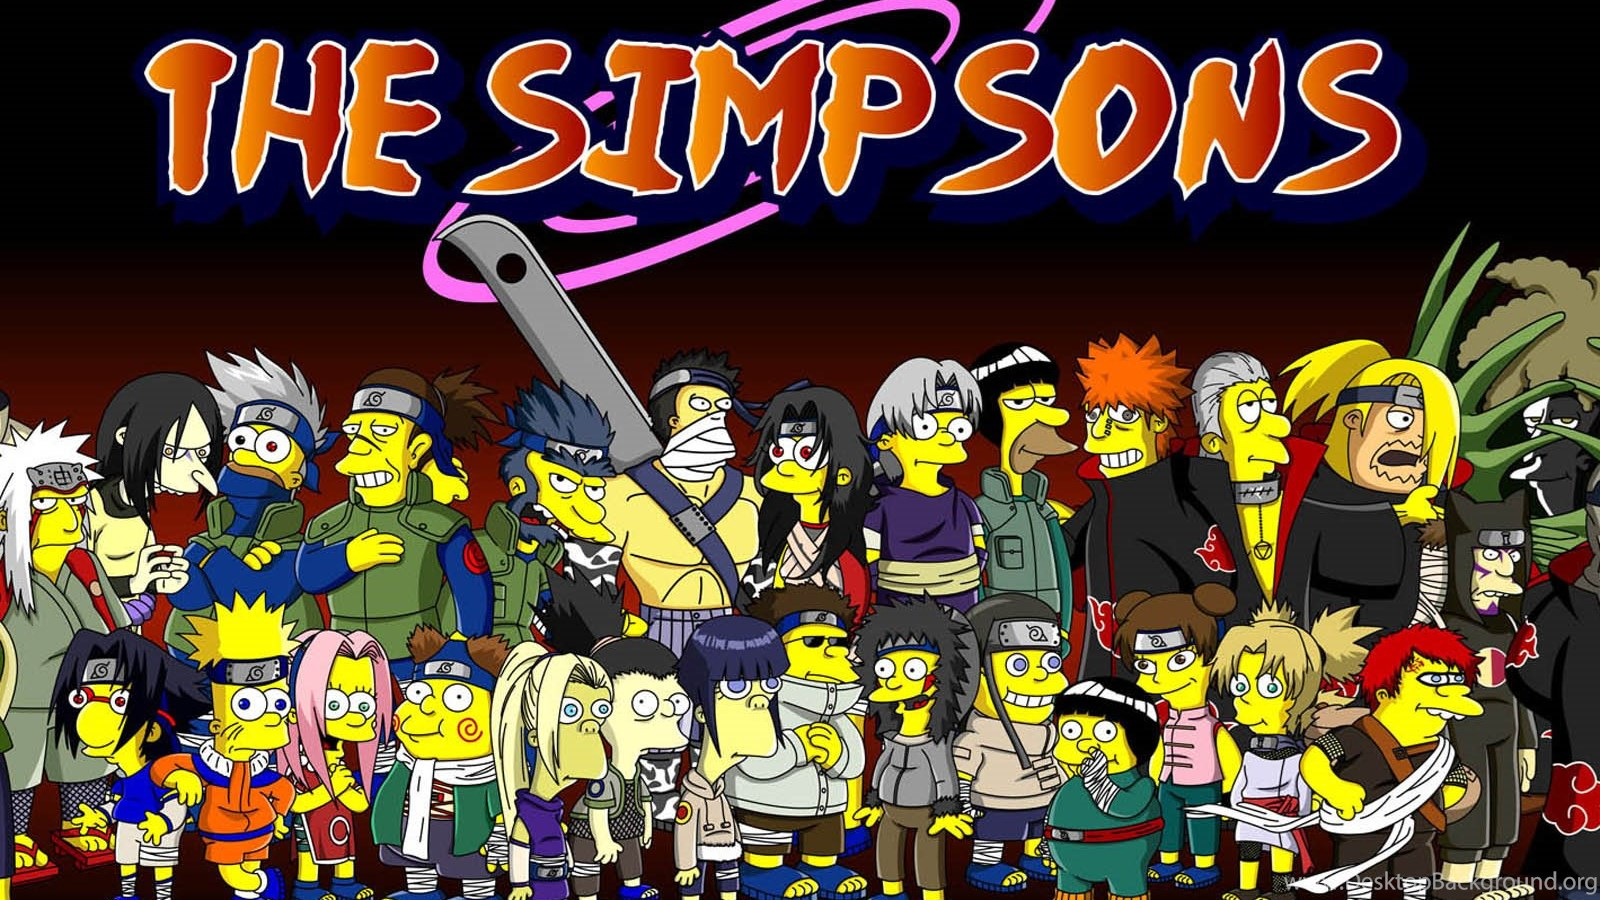 Wallpaper For Iphone 4s Black Simpsons Naruto Wallpapers Wallpapers Free Simpsons Naruto